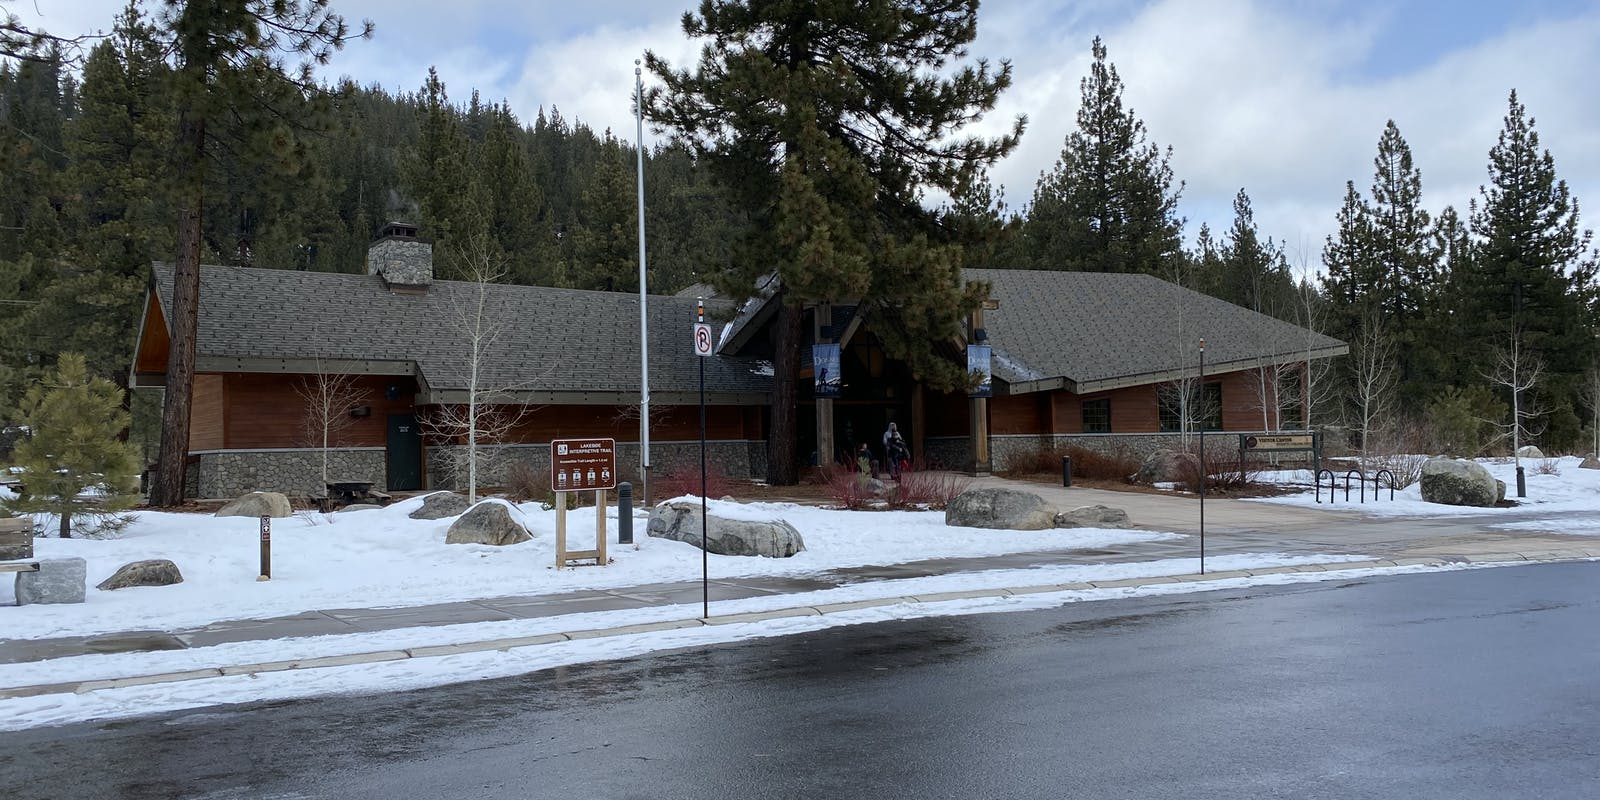 Donner Memorial State Park Visitor Center